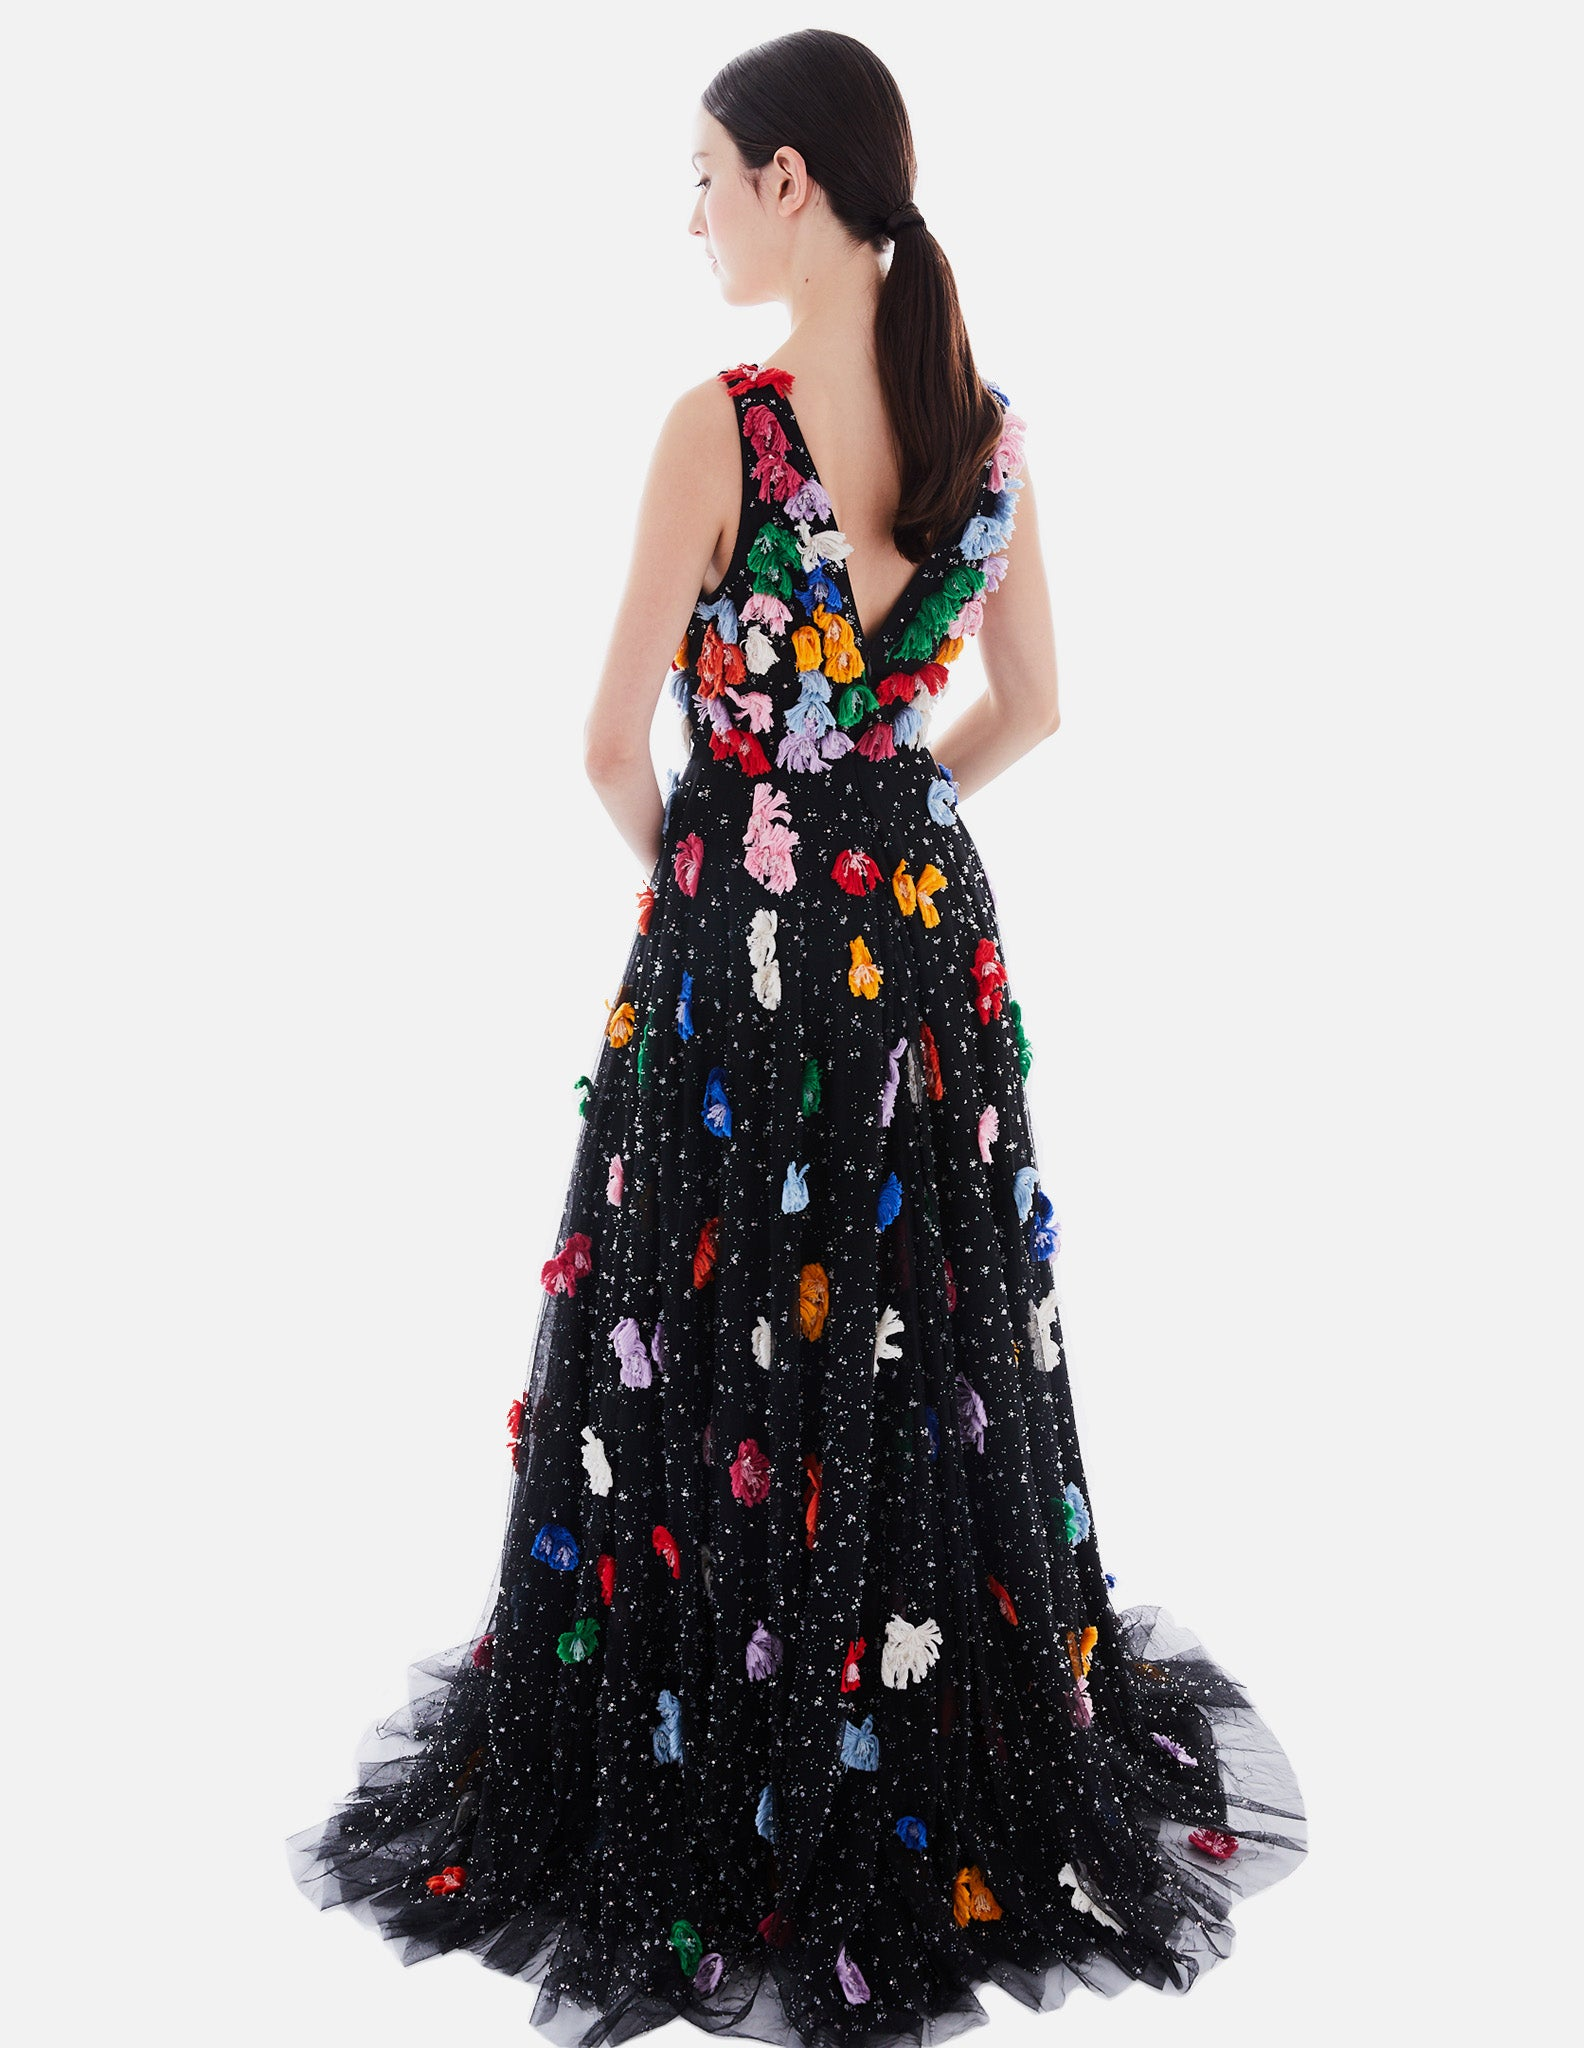 The Love Gown